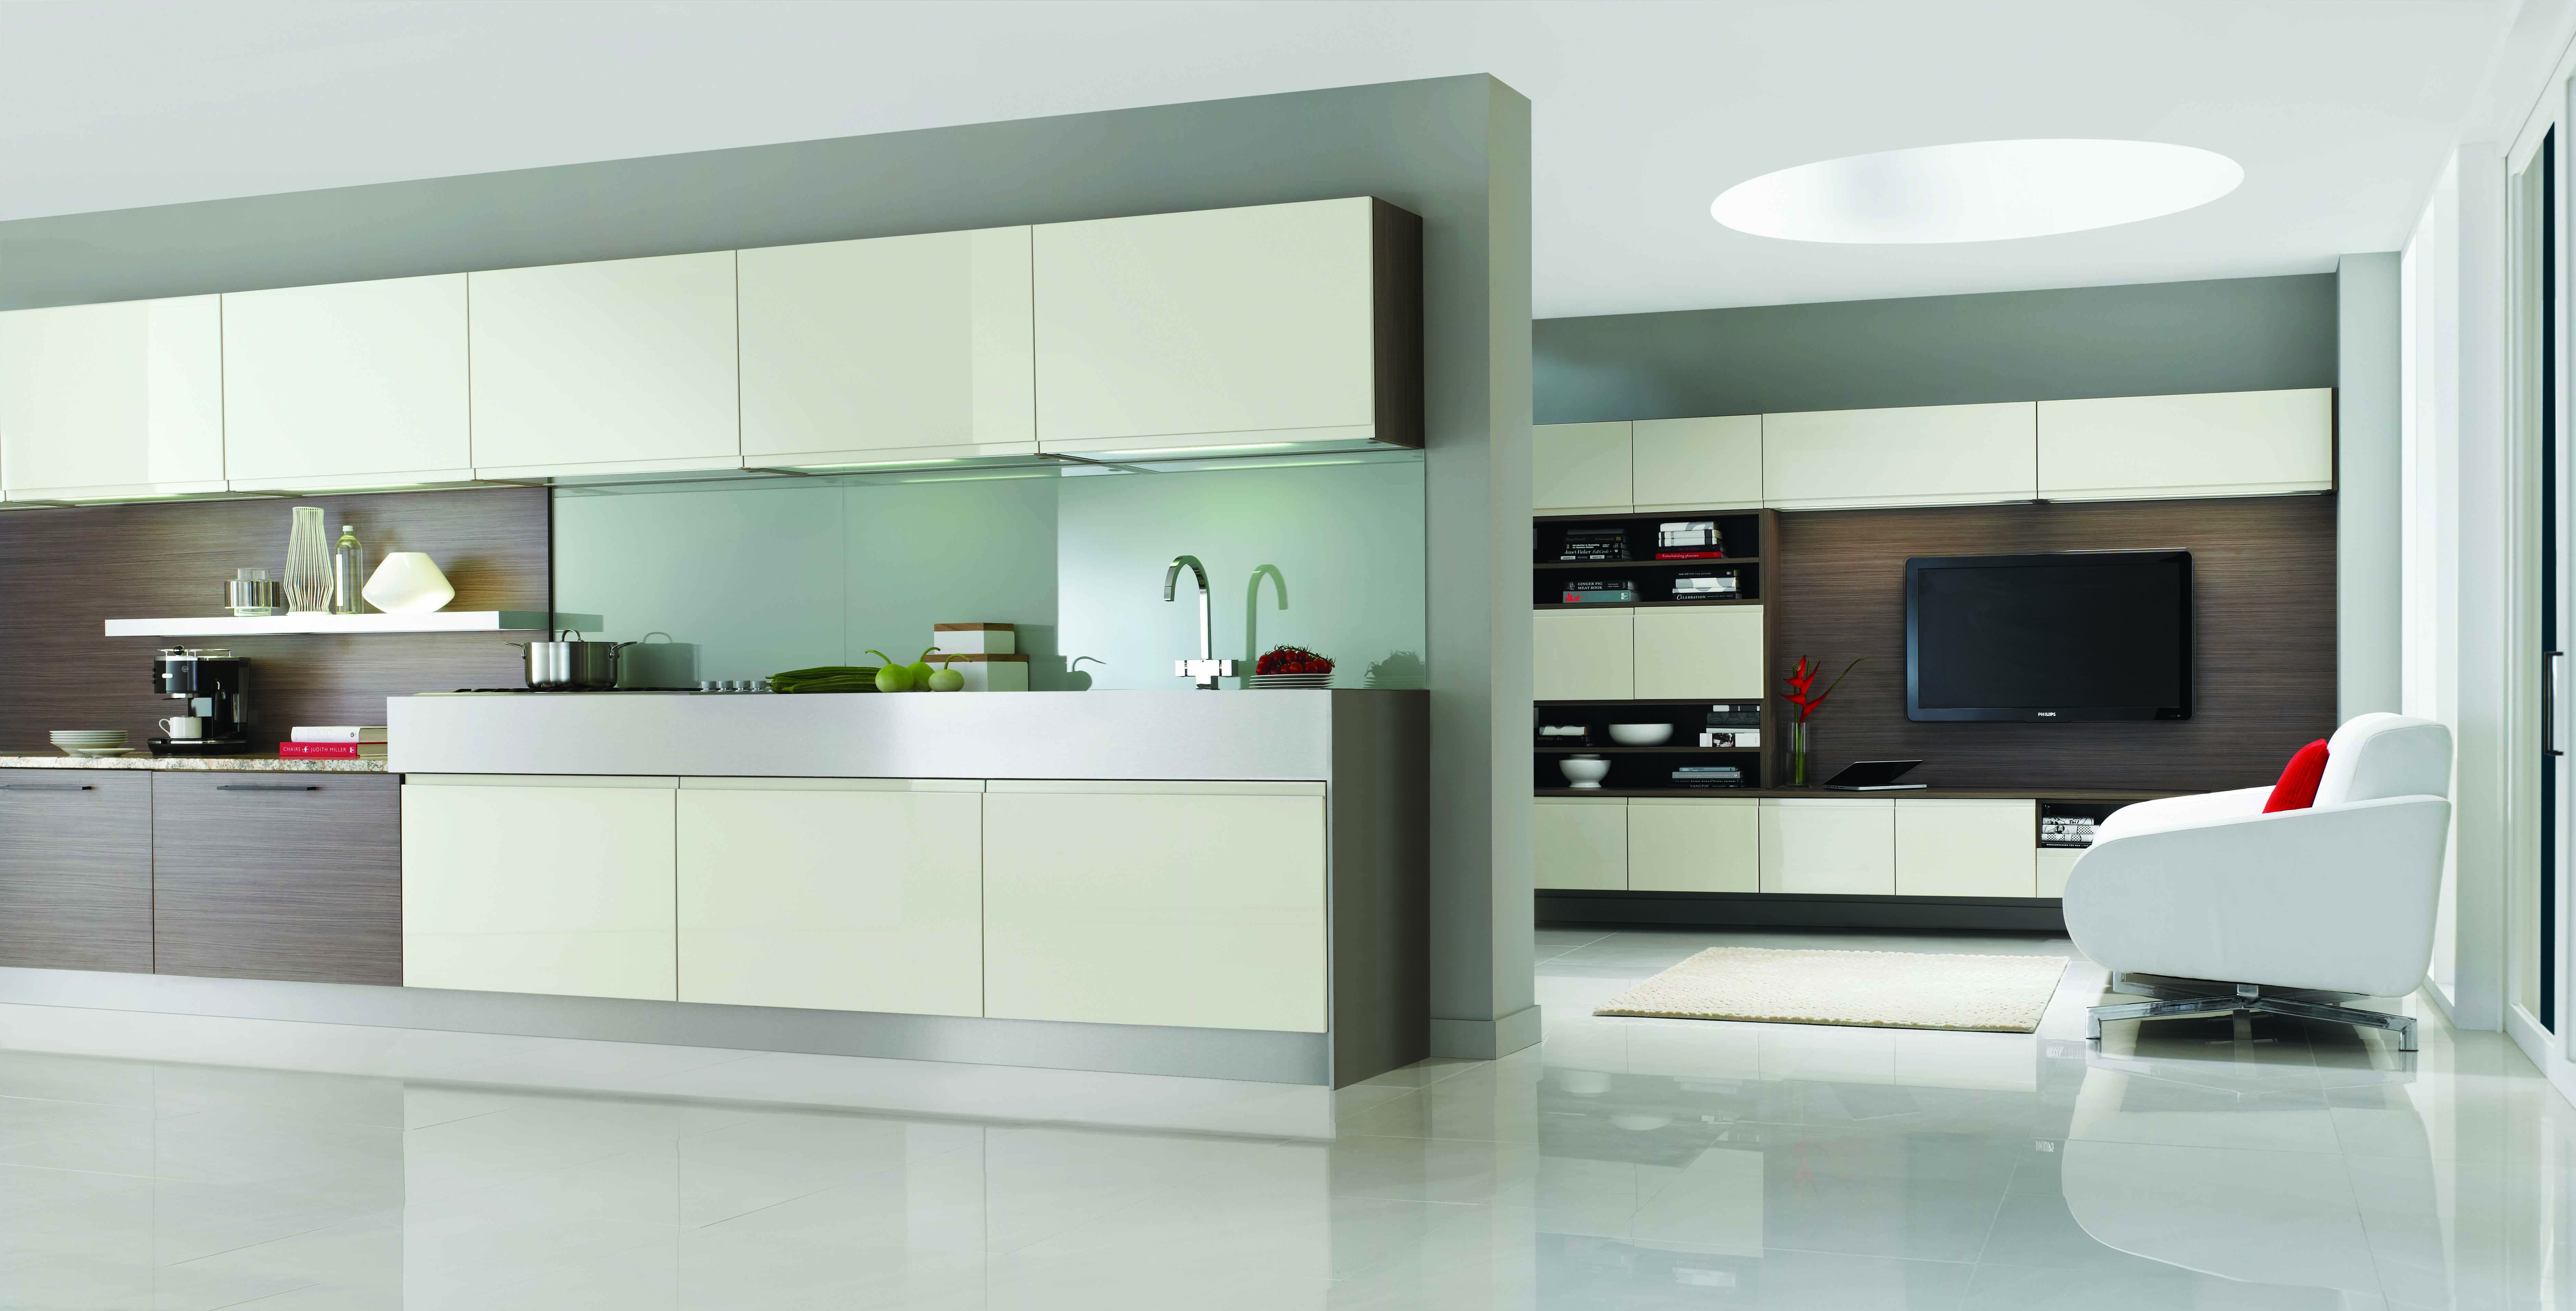 Delicieux A Stunning Kitchen And Living Space ...